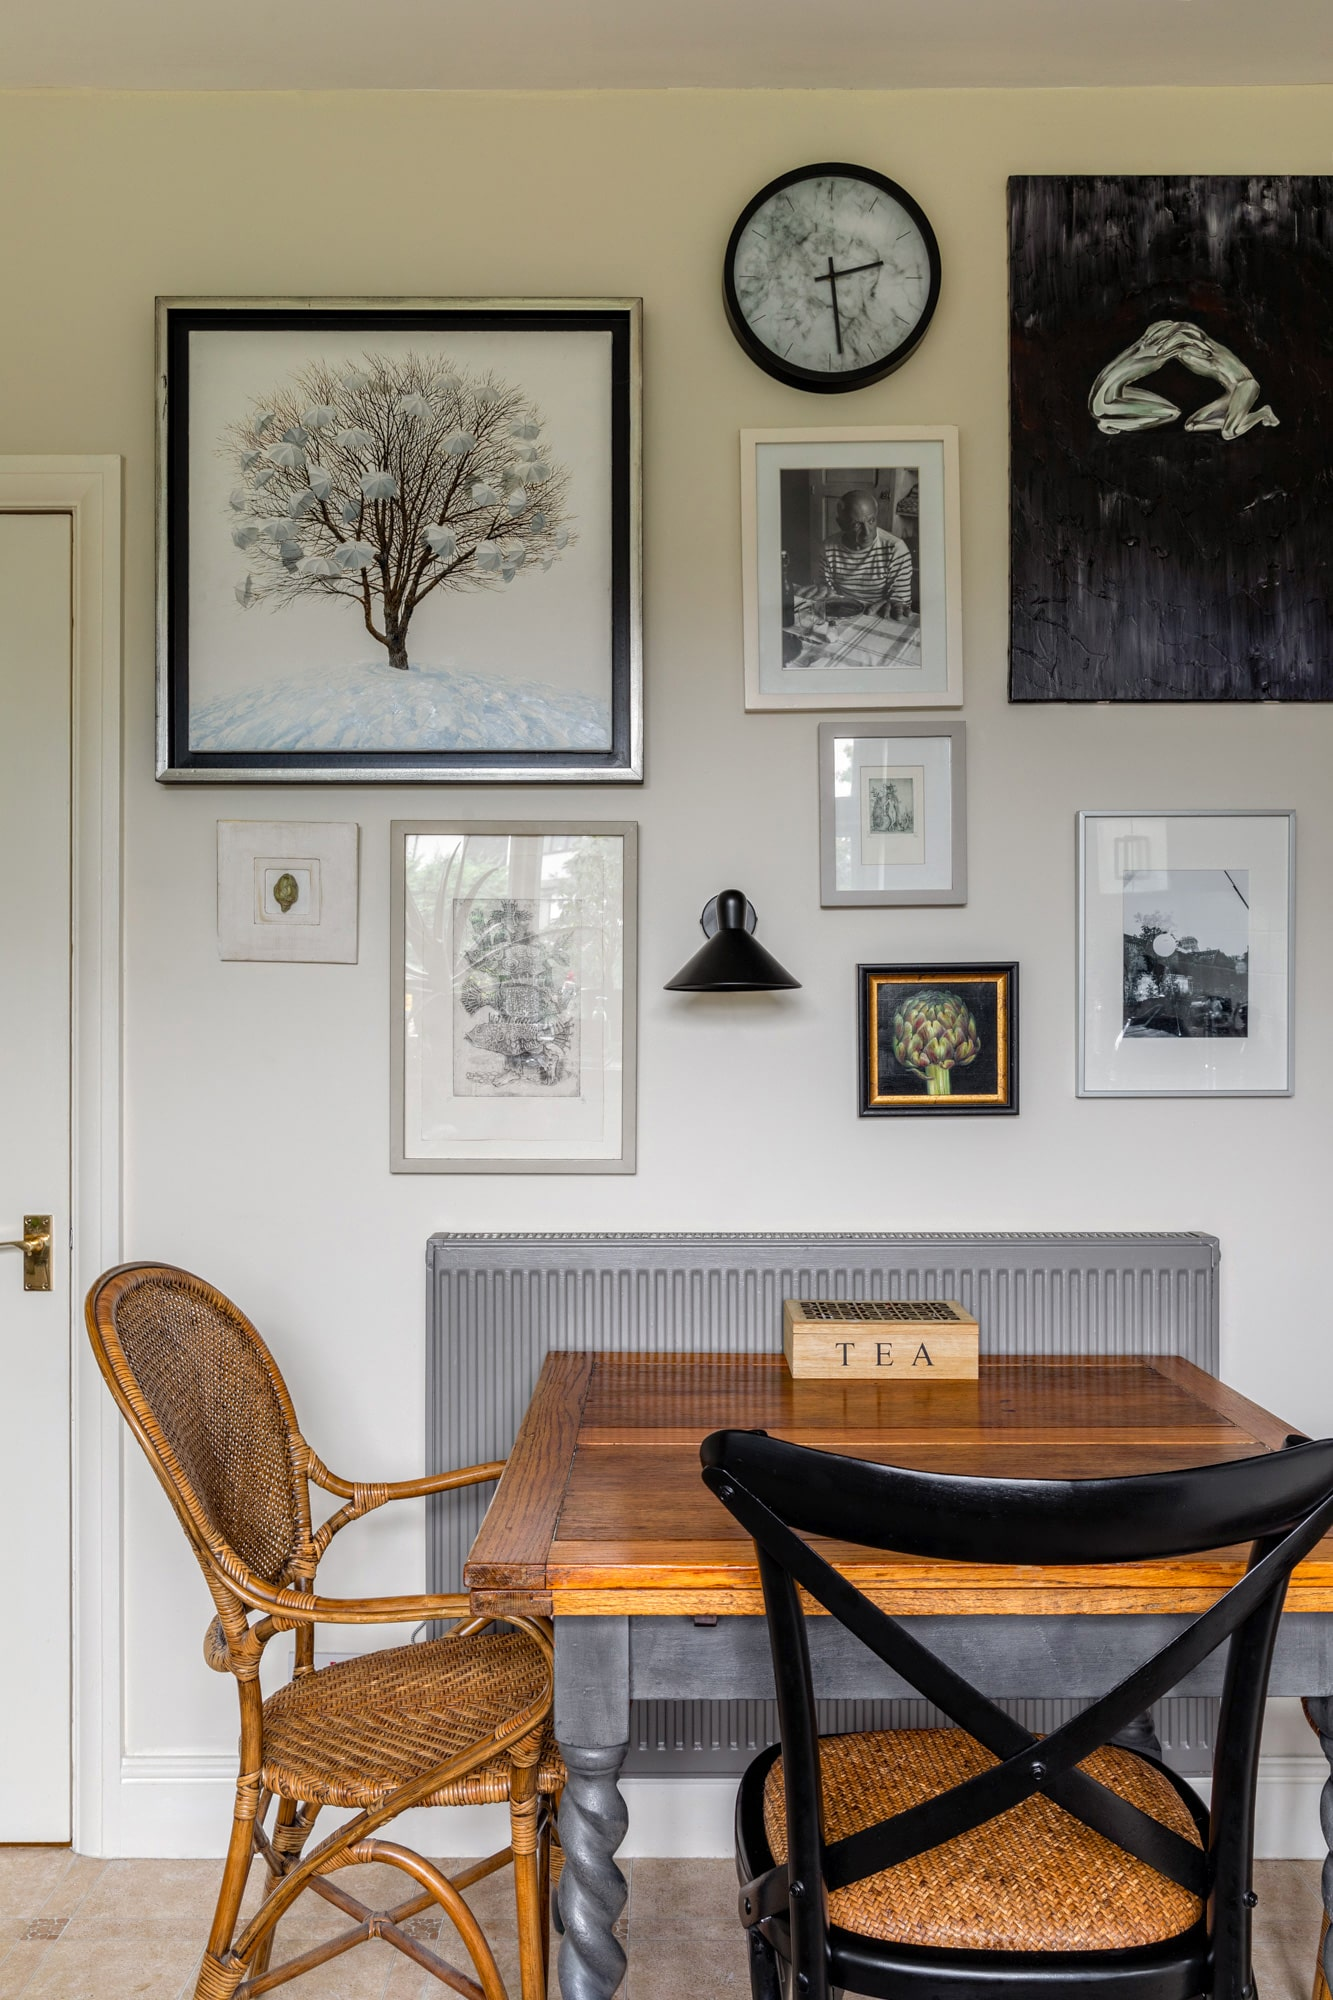 Interior design photo: kitchen with warm beige walls; wooden table with mismatched chairs and wall art